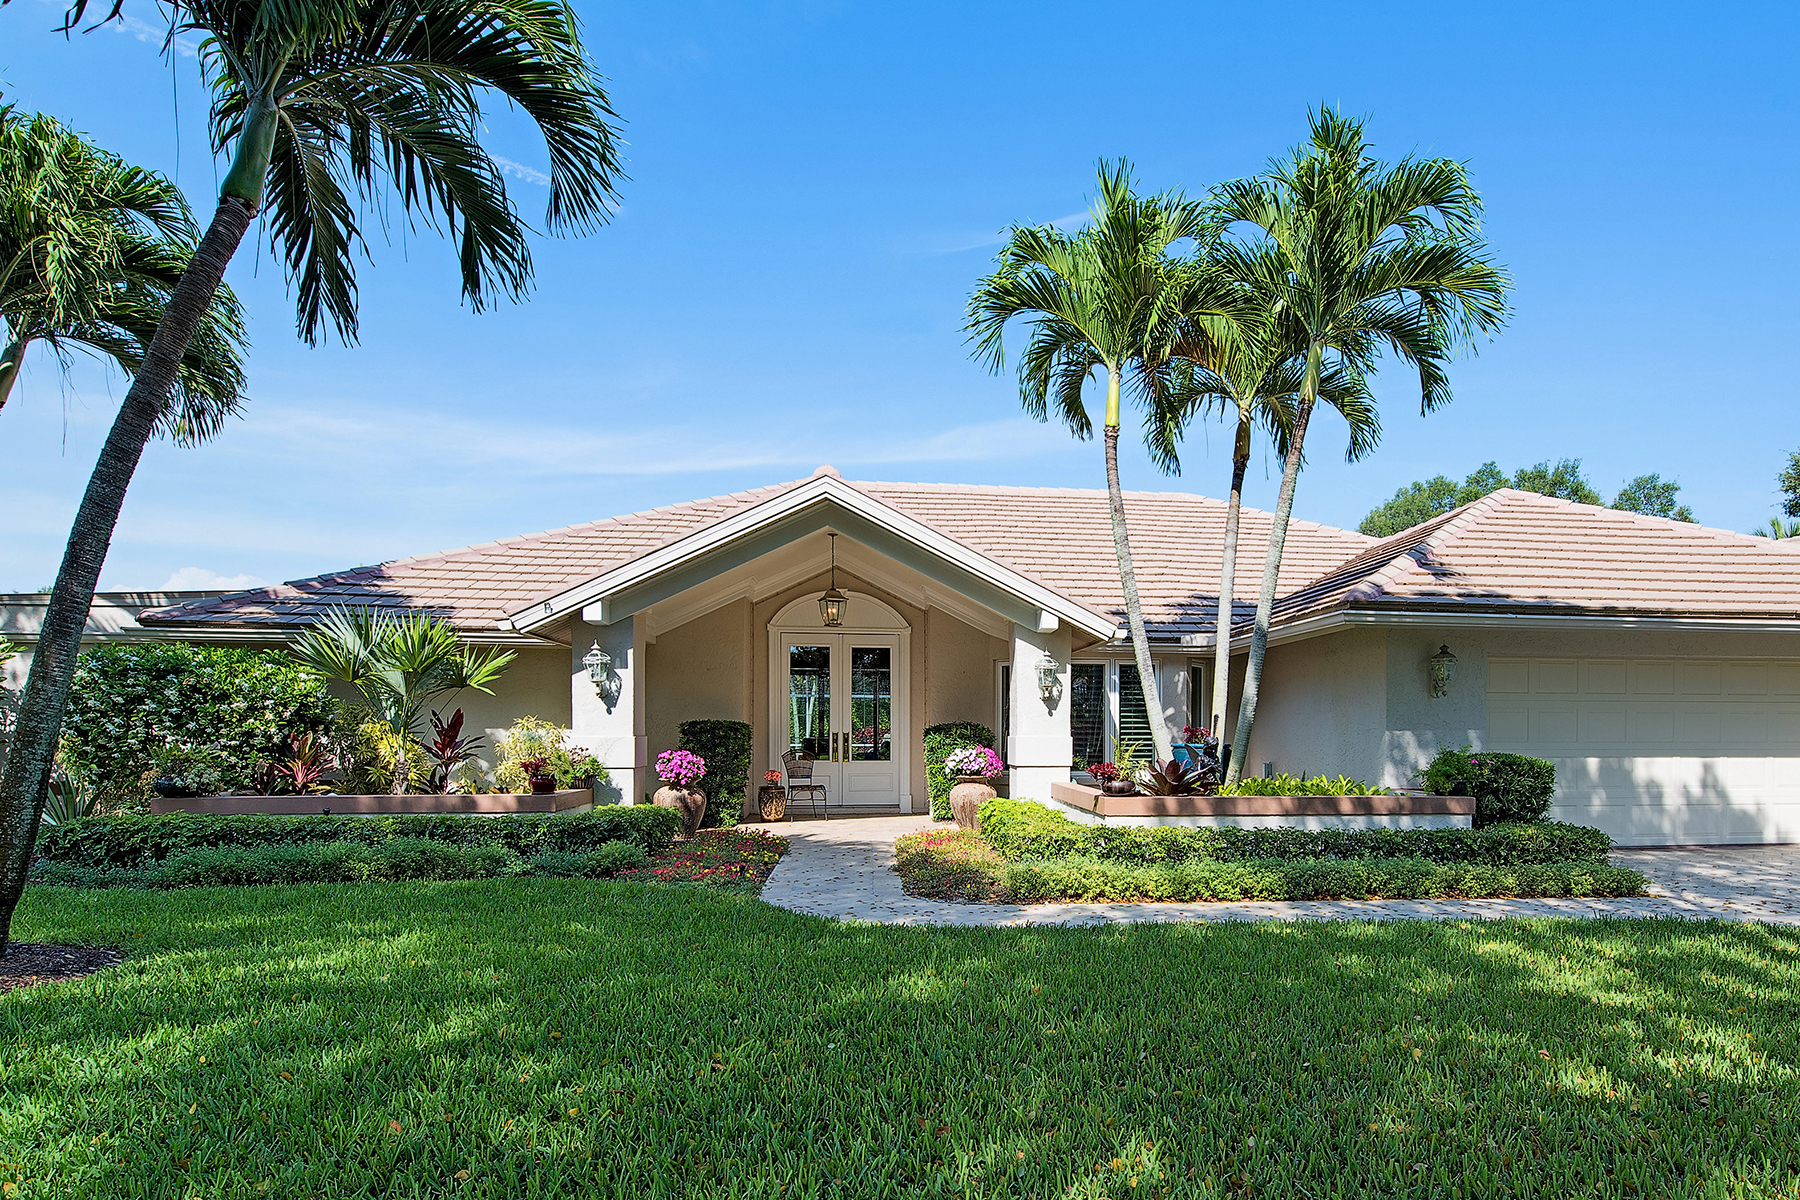 Single Family Home for Sale at PINECREST AT PELICAN BAY 803 Tallow Tree Ct Naples, Florida, 34108 United States